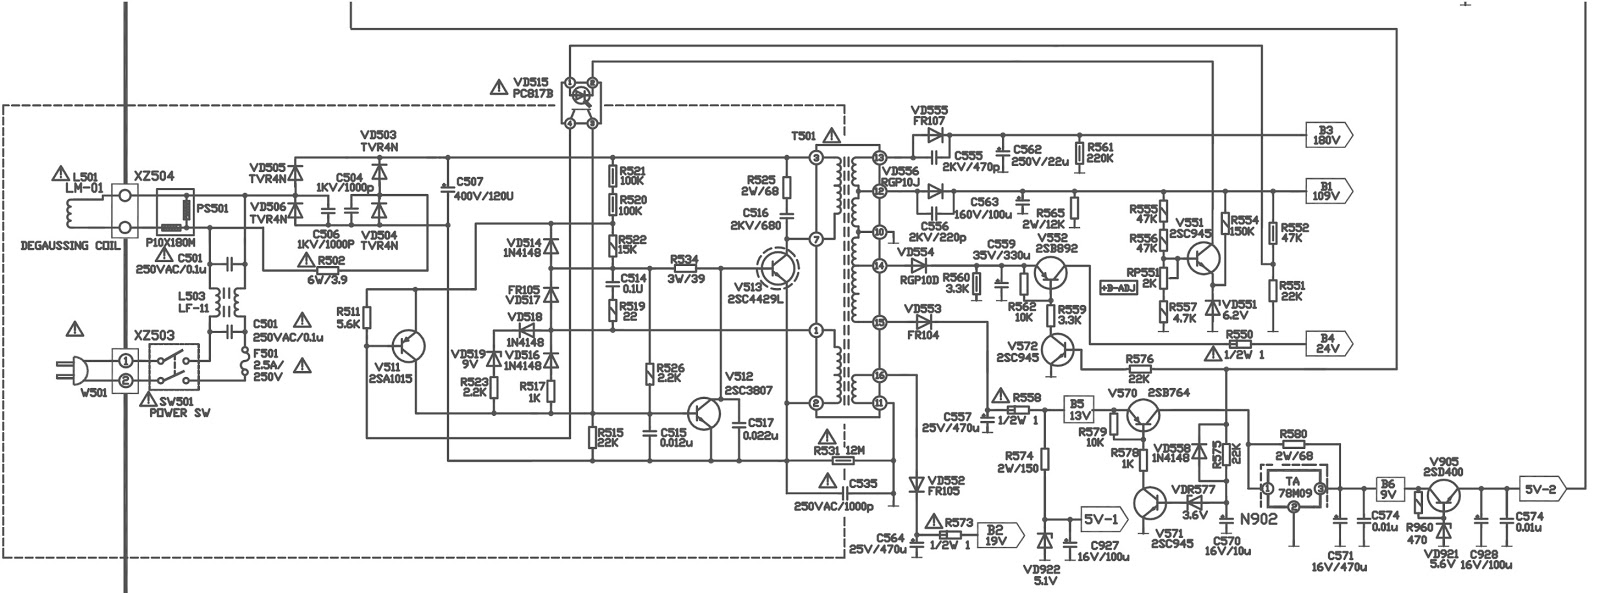 akira 21fzs1 tv smps schematic diagram [circuit diagram Television Schematics power schematic [smps] {click on image to magnify}